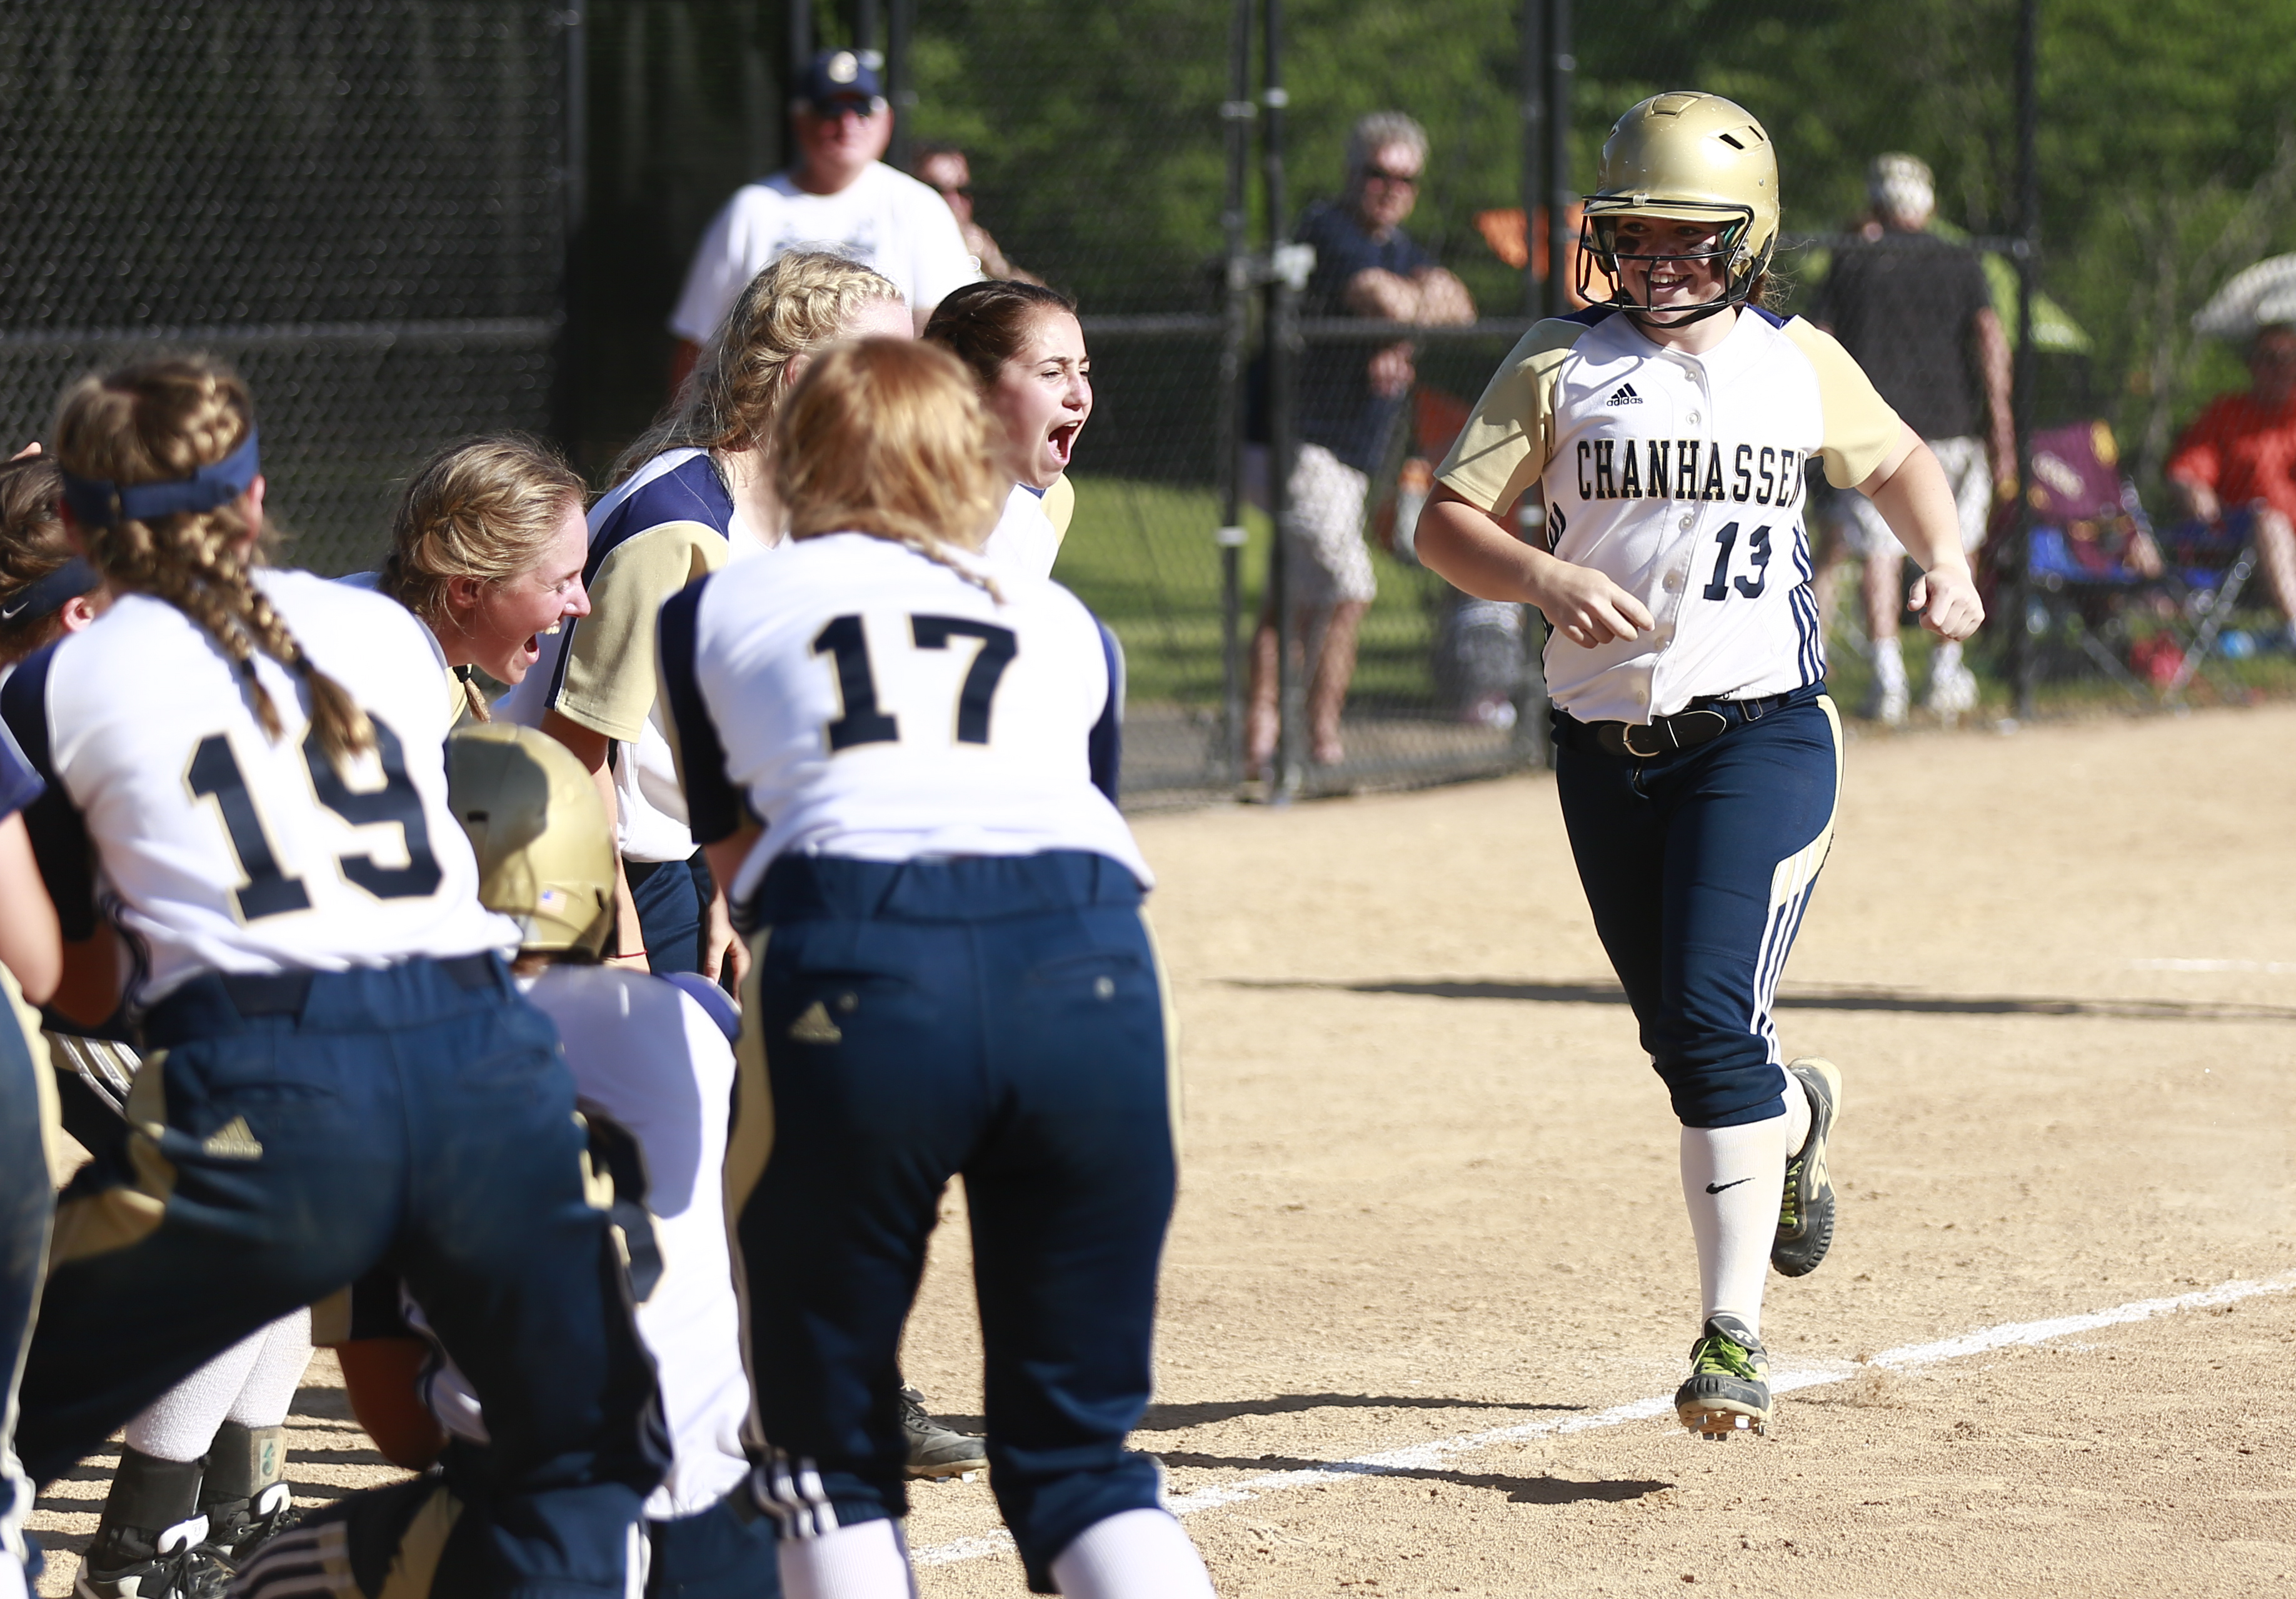 The Chanhassen Storm's Marybeth Olson (13) is cheered in by her teammates after hitting a two-run home run in the third inning of the Class 4A, Section . The Storm secured 6-3 victory over the Eagles, sending them to the state tournament. Photo by Chris J